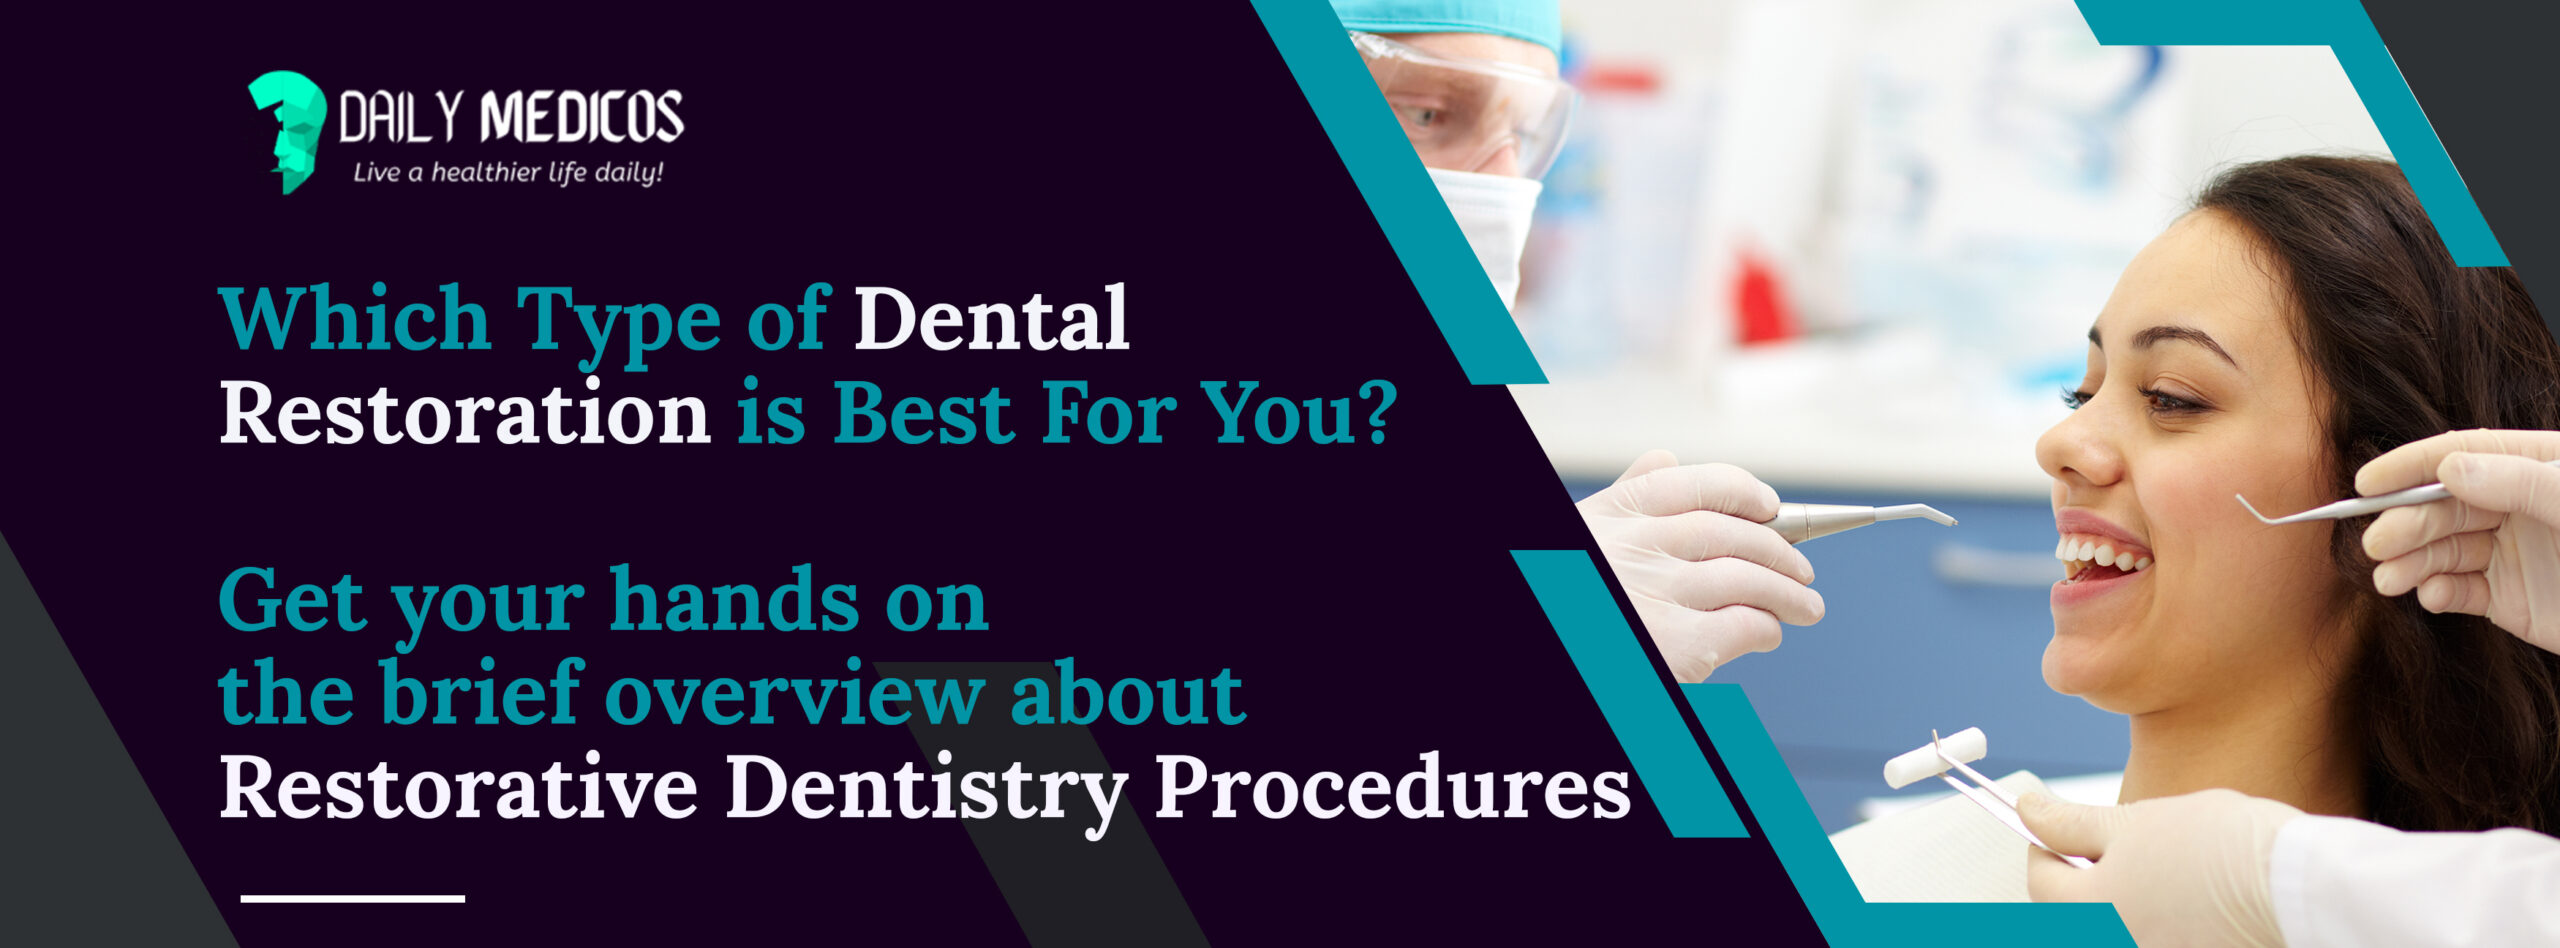 Which Type of Dental Restoration is Best For You? The Brief Overview About Restorative Dentistry Procedures 9 - Daily Medicos